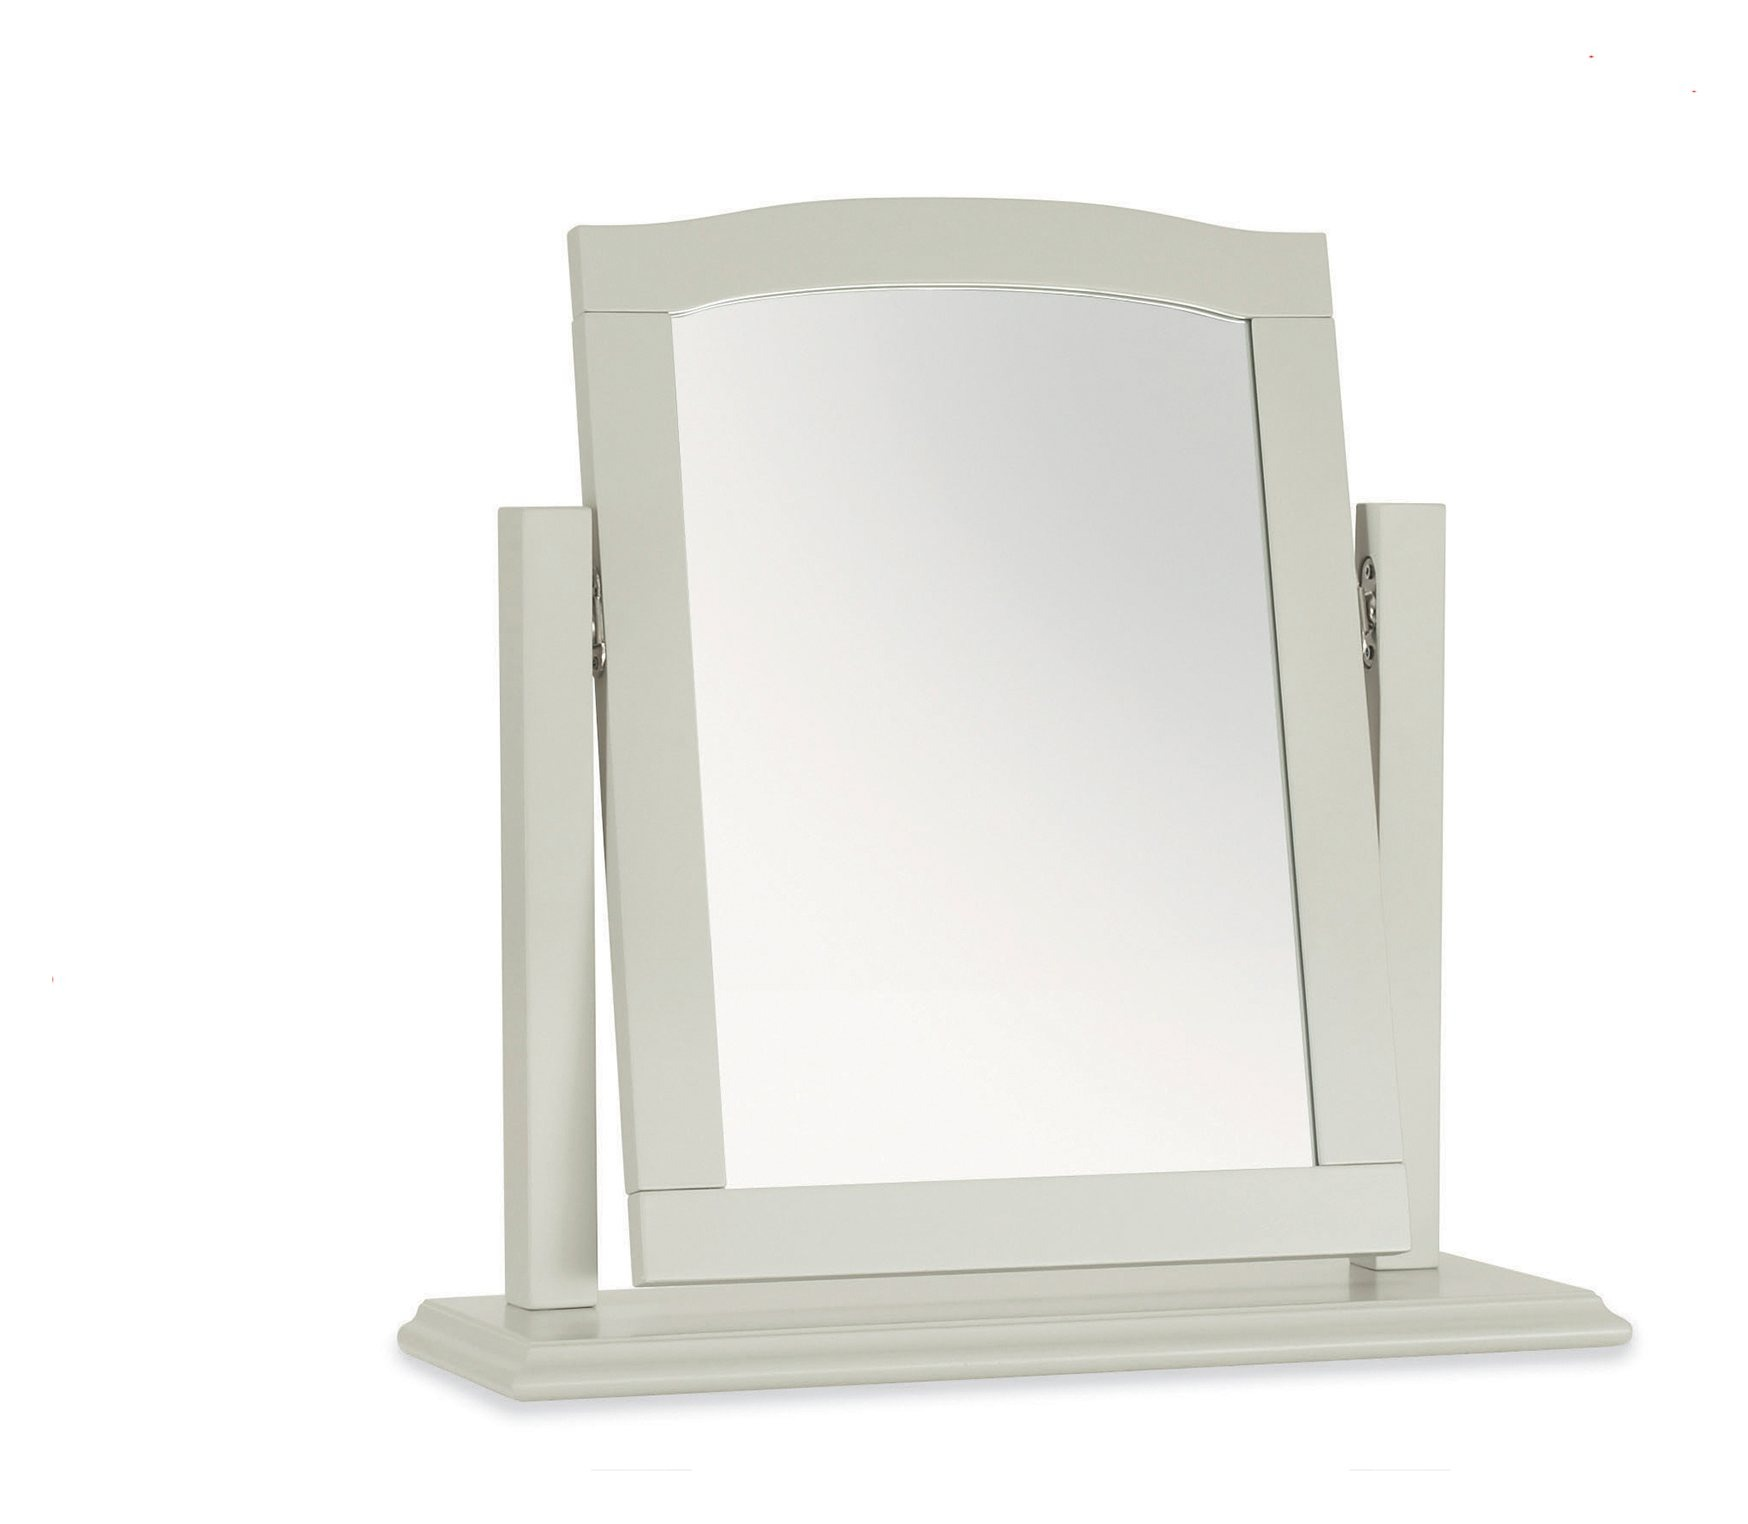 ASHLEY GREY BEDROOM MIRROR - L52cm x D18cm x H53cm. ANGLE VIEW